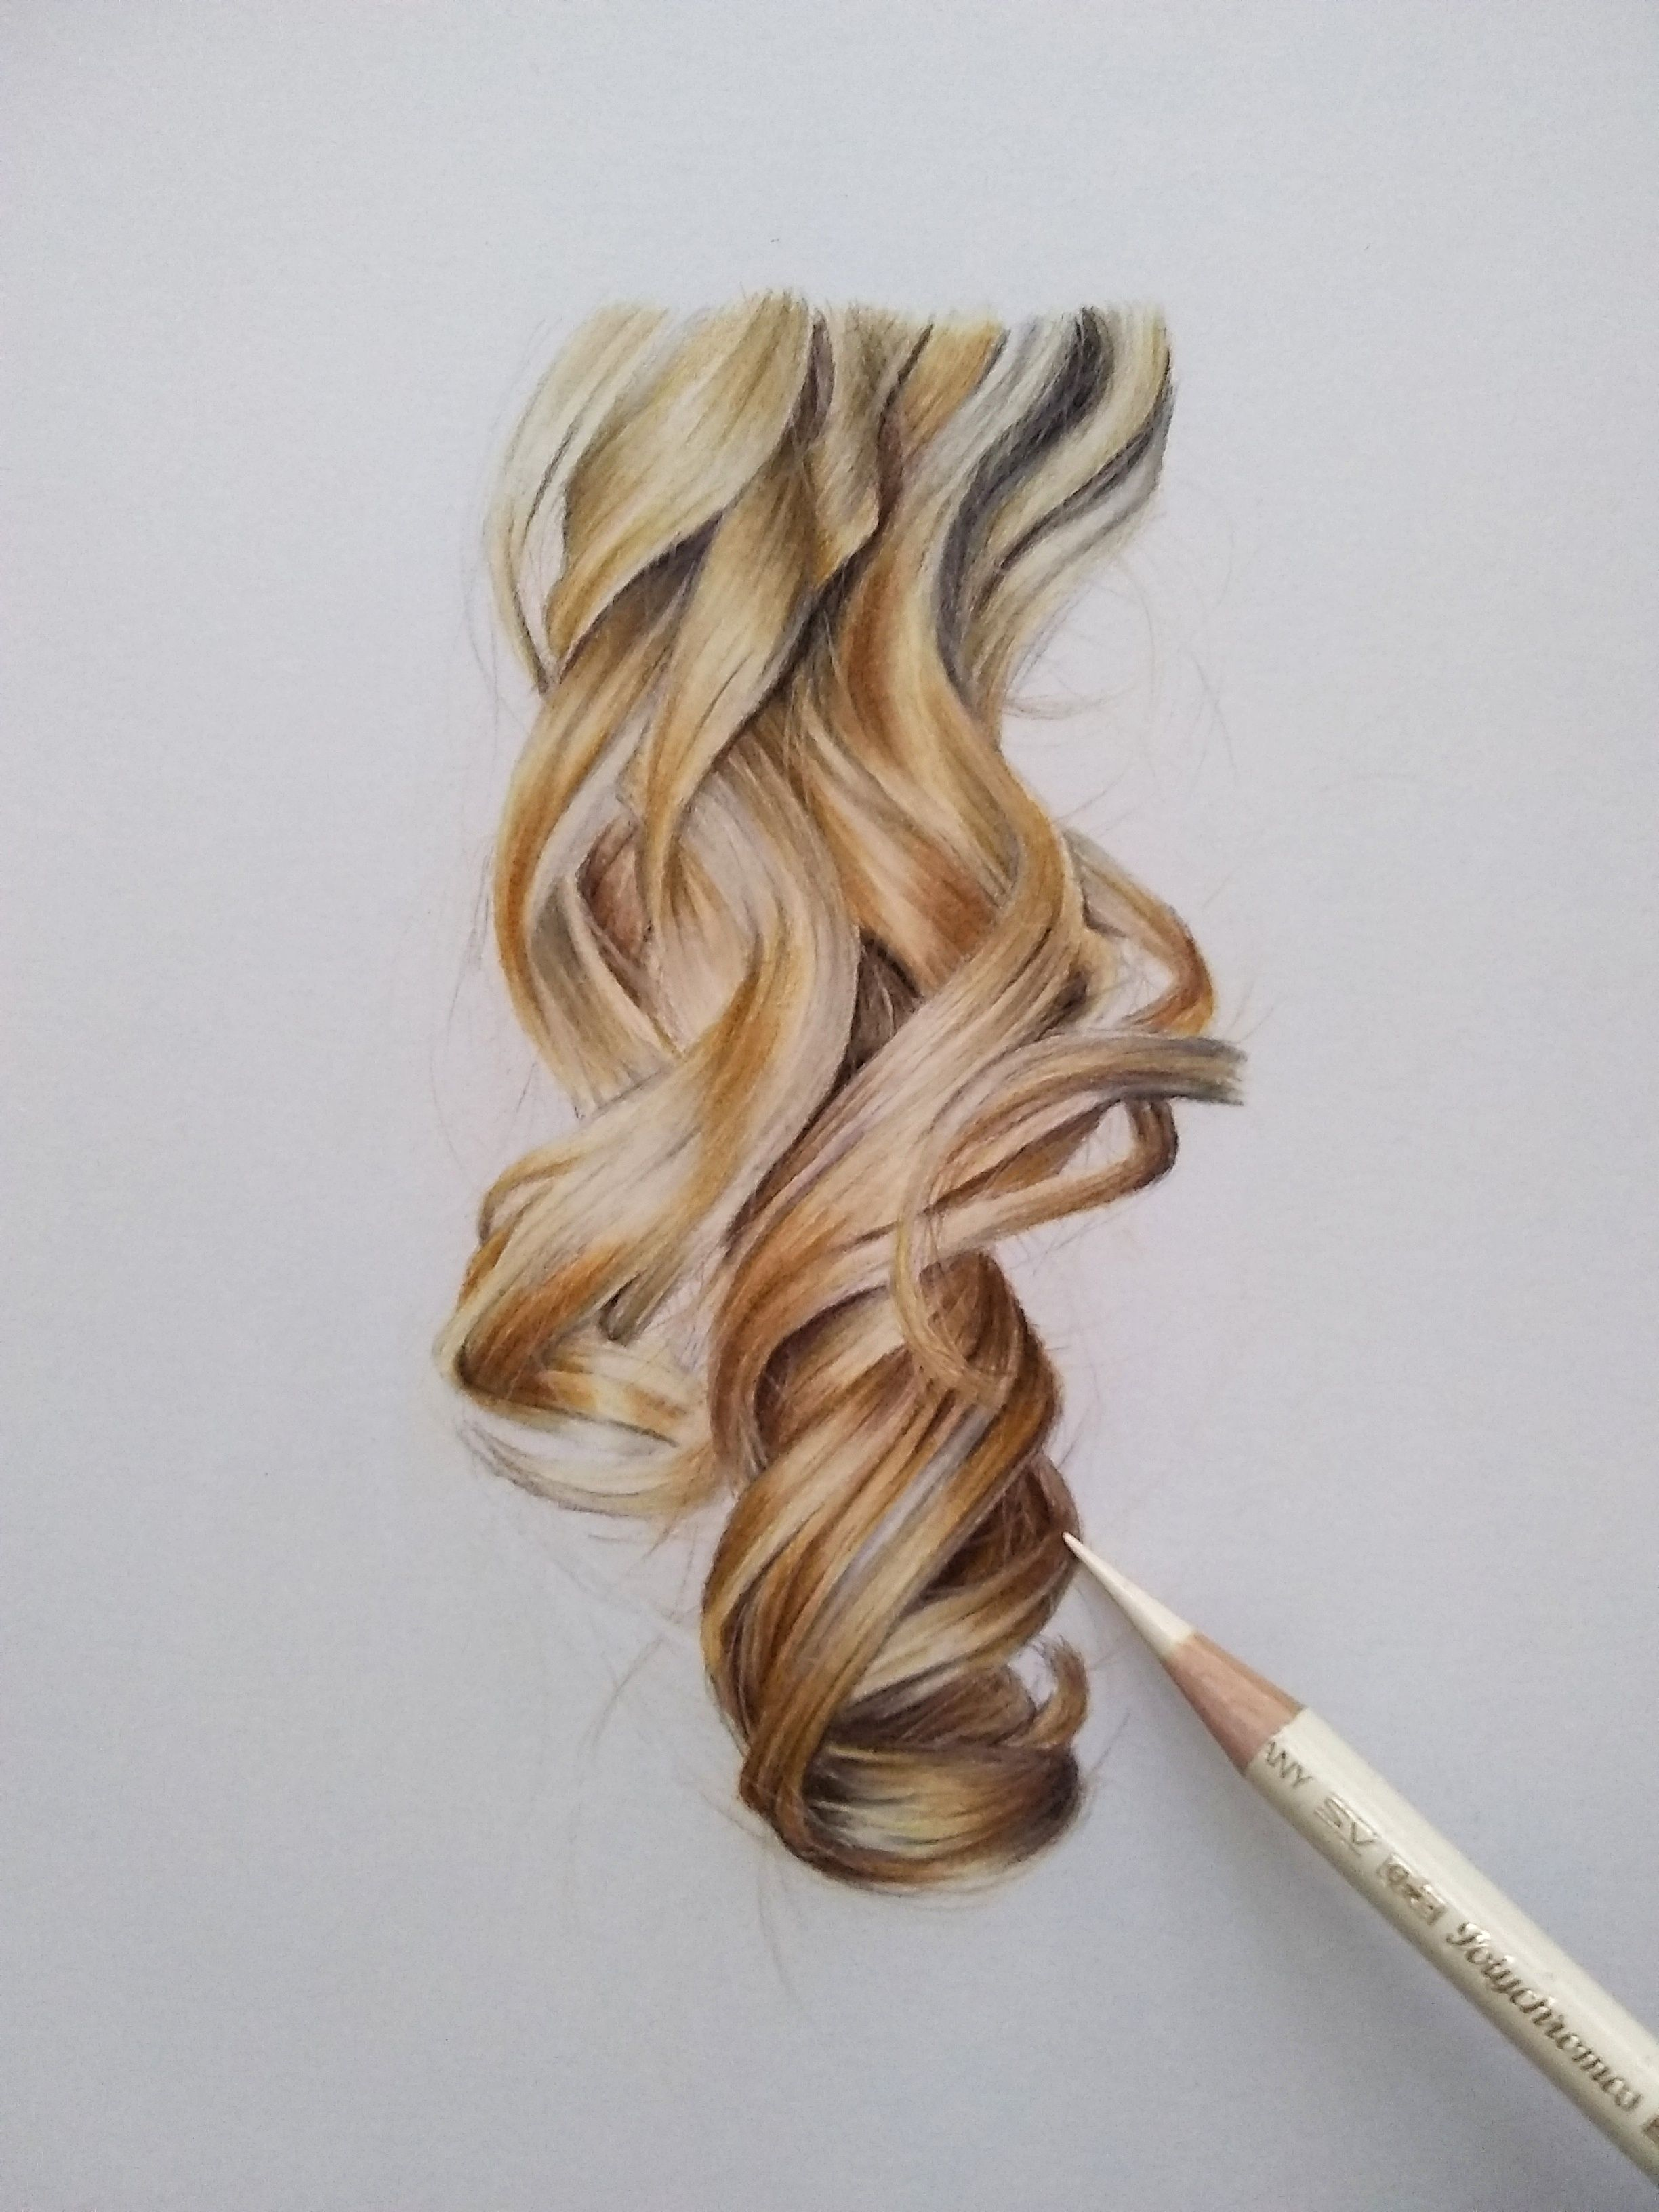 Learn How To Draw Blonde Curls In Colored Pencils Realistic Hair Drawing Color Pencil Drawing How To Draw Hair